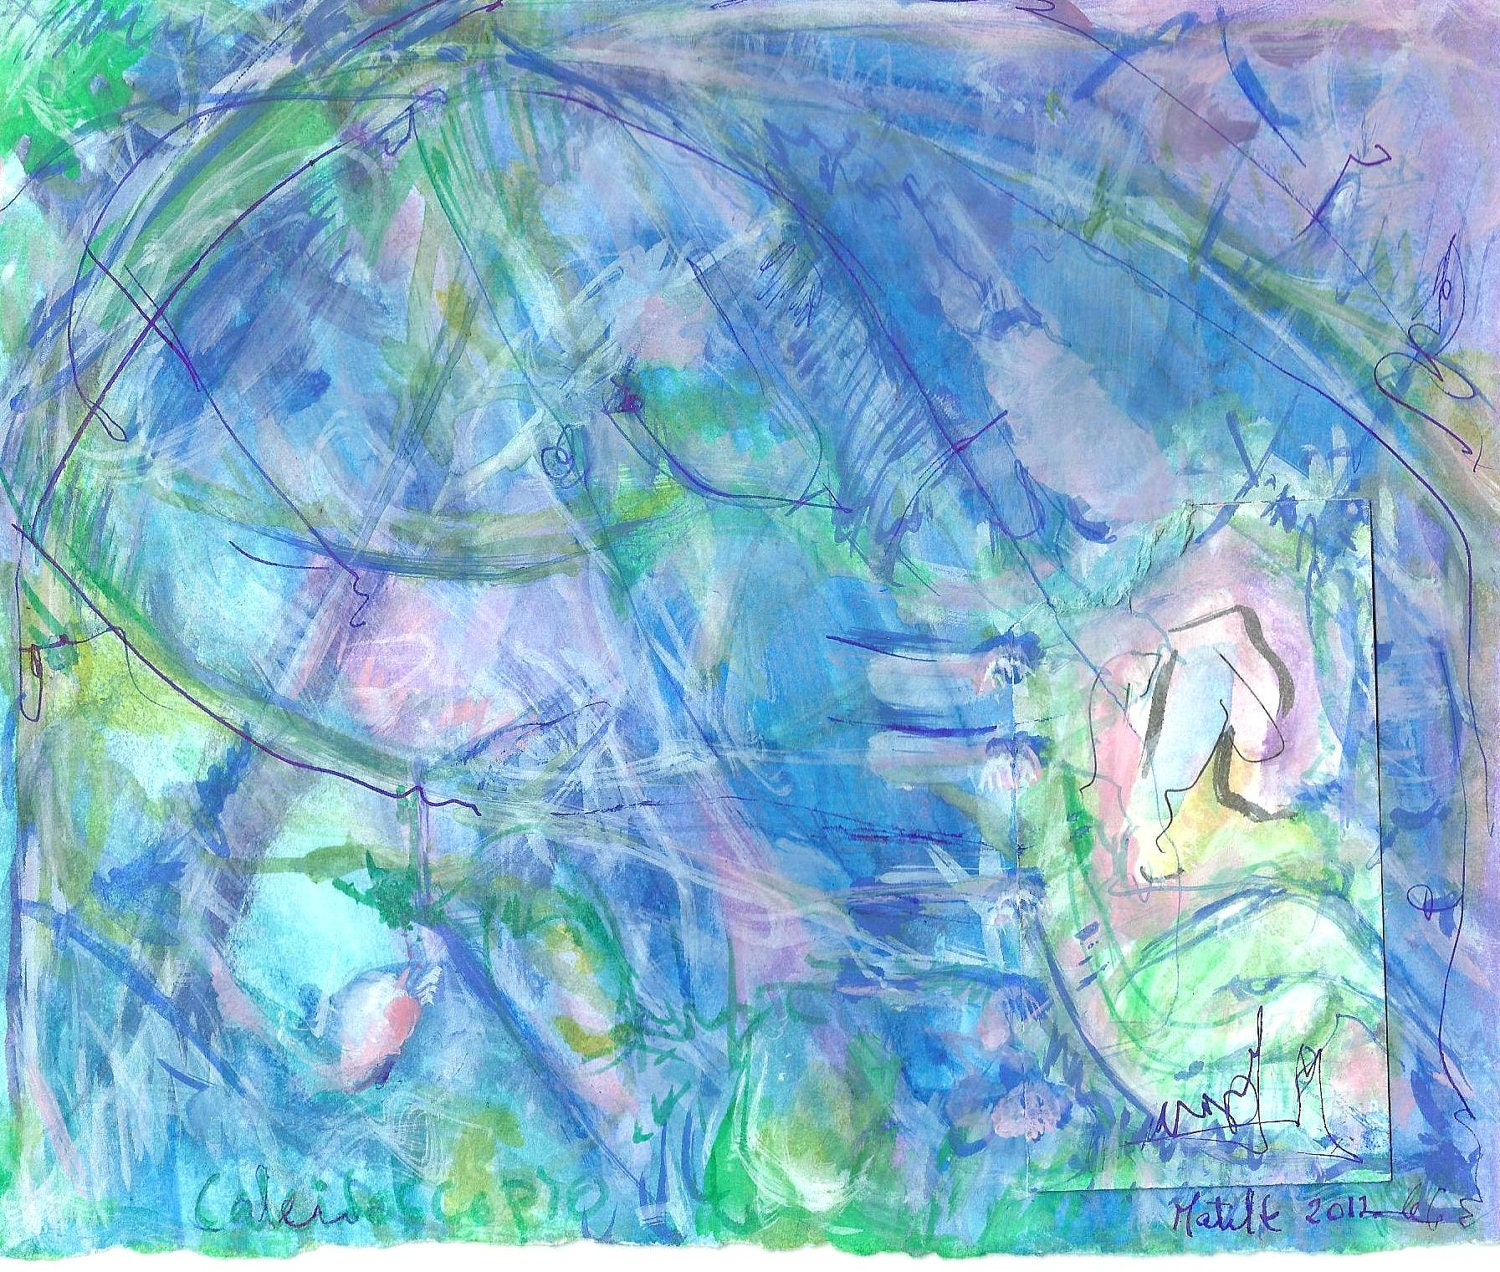 Blue, green, pink, artwork, original abstract painting-loose gestural lines, modern indian ink Watercolor Paper-Fine Art.Size: 22.8 x 19.cm.